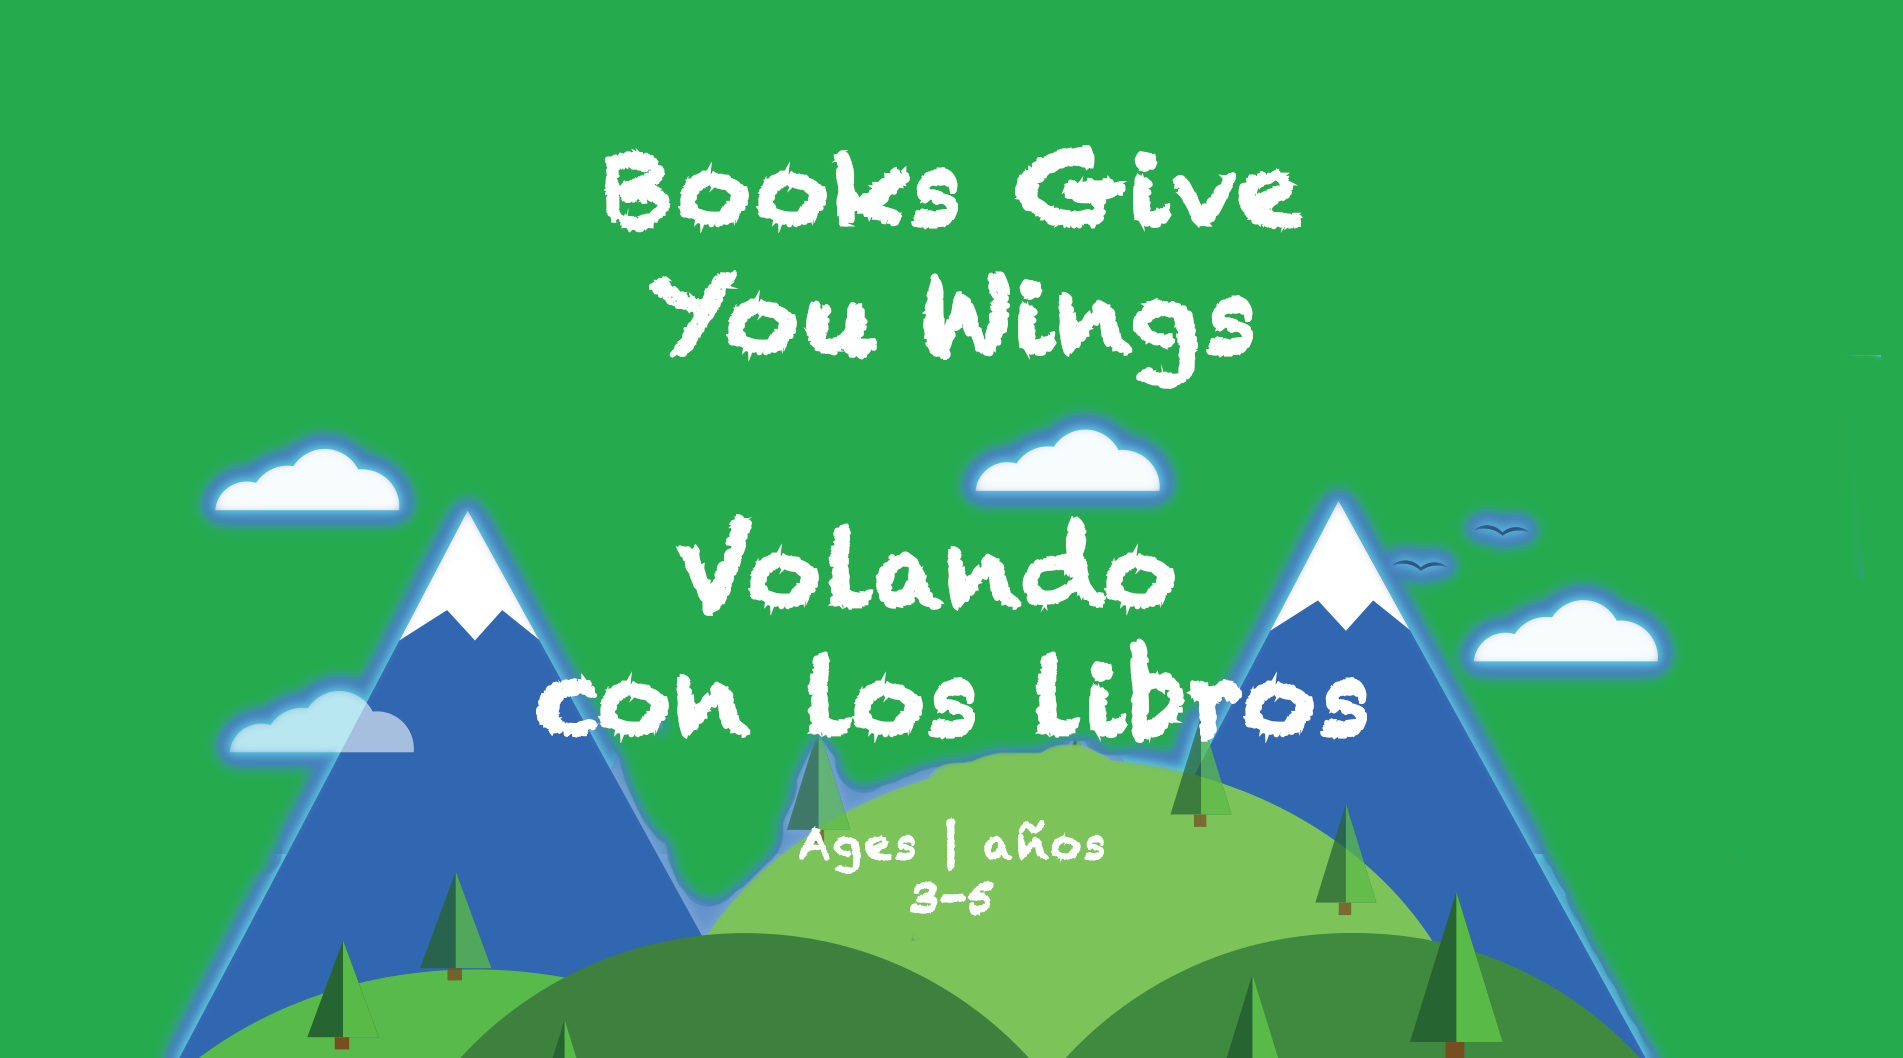 Weekly Themes #18 Books Give You Wings for 3-5 year olds